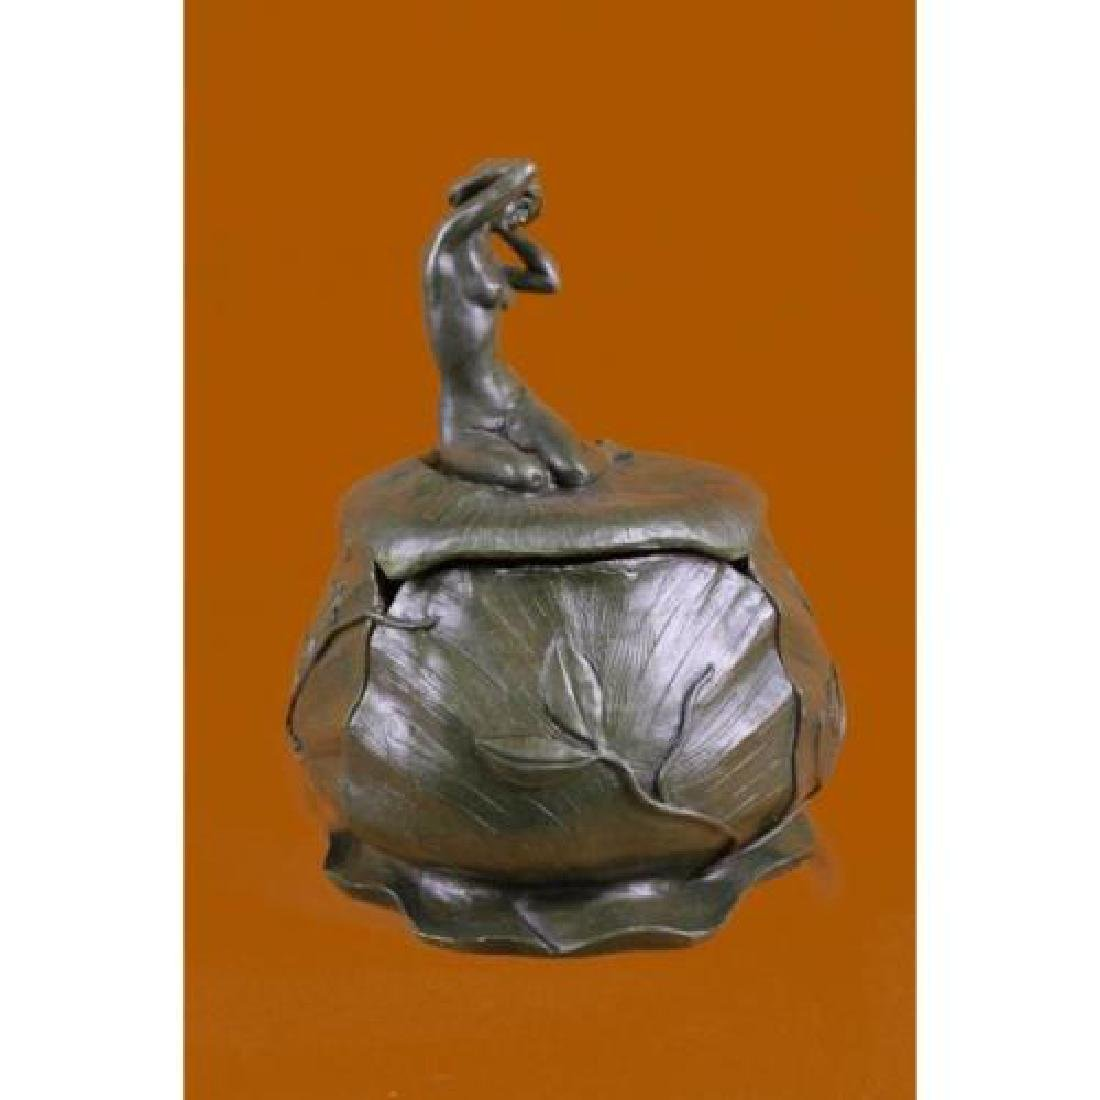 Bowl or Jewelry Box With Lid Bronze Sculpture - 2